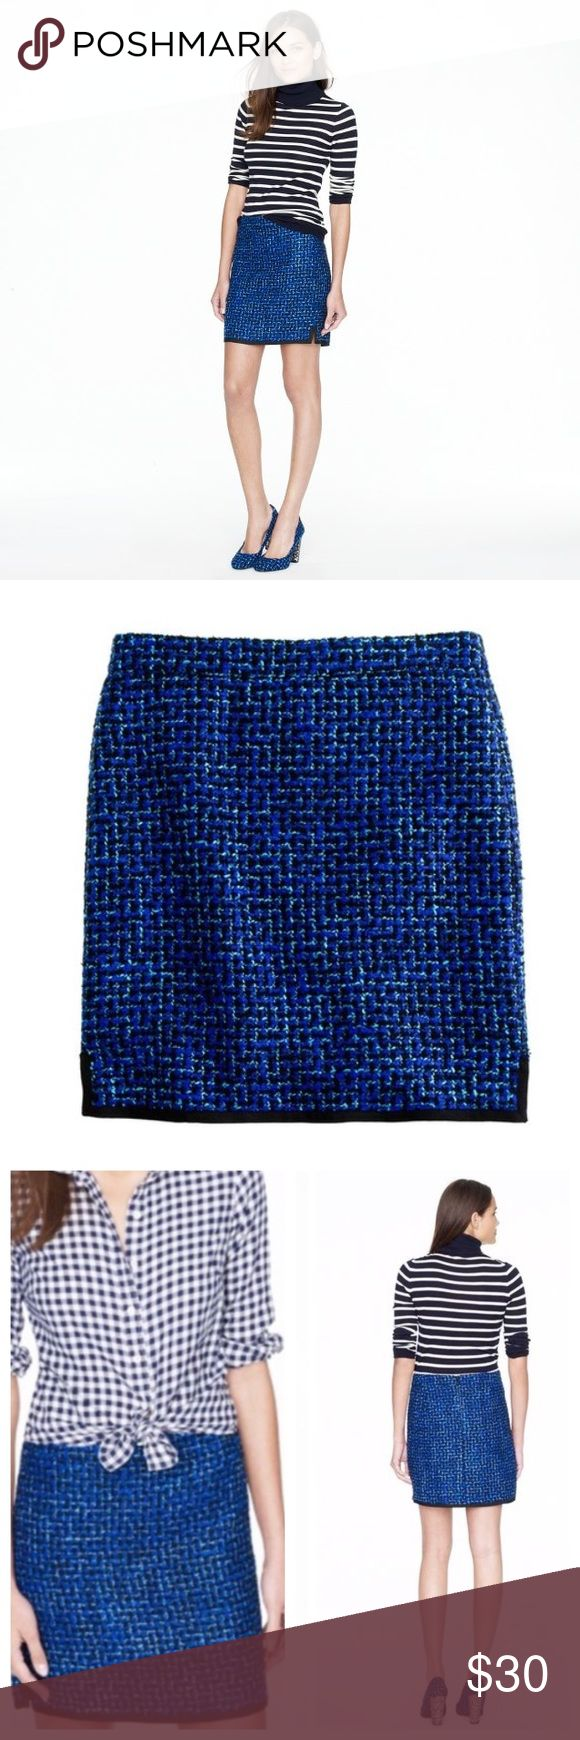 """J.Crew Postage Stamp Mini Skirt in Indigo Tweed J. Crew """"postage stamp mini"""" skirt in indigo tweed. EUC. Only worn a few times. It's beautiful skirt that works year round (add some tights in winter). Lined, size 2 but fits like a Small. J. Crew Skirts Mini"""